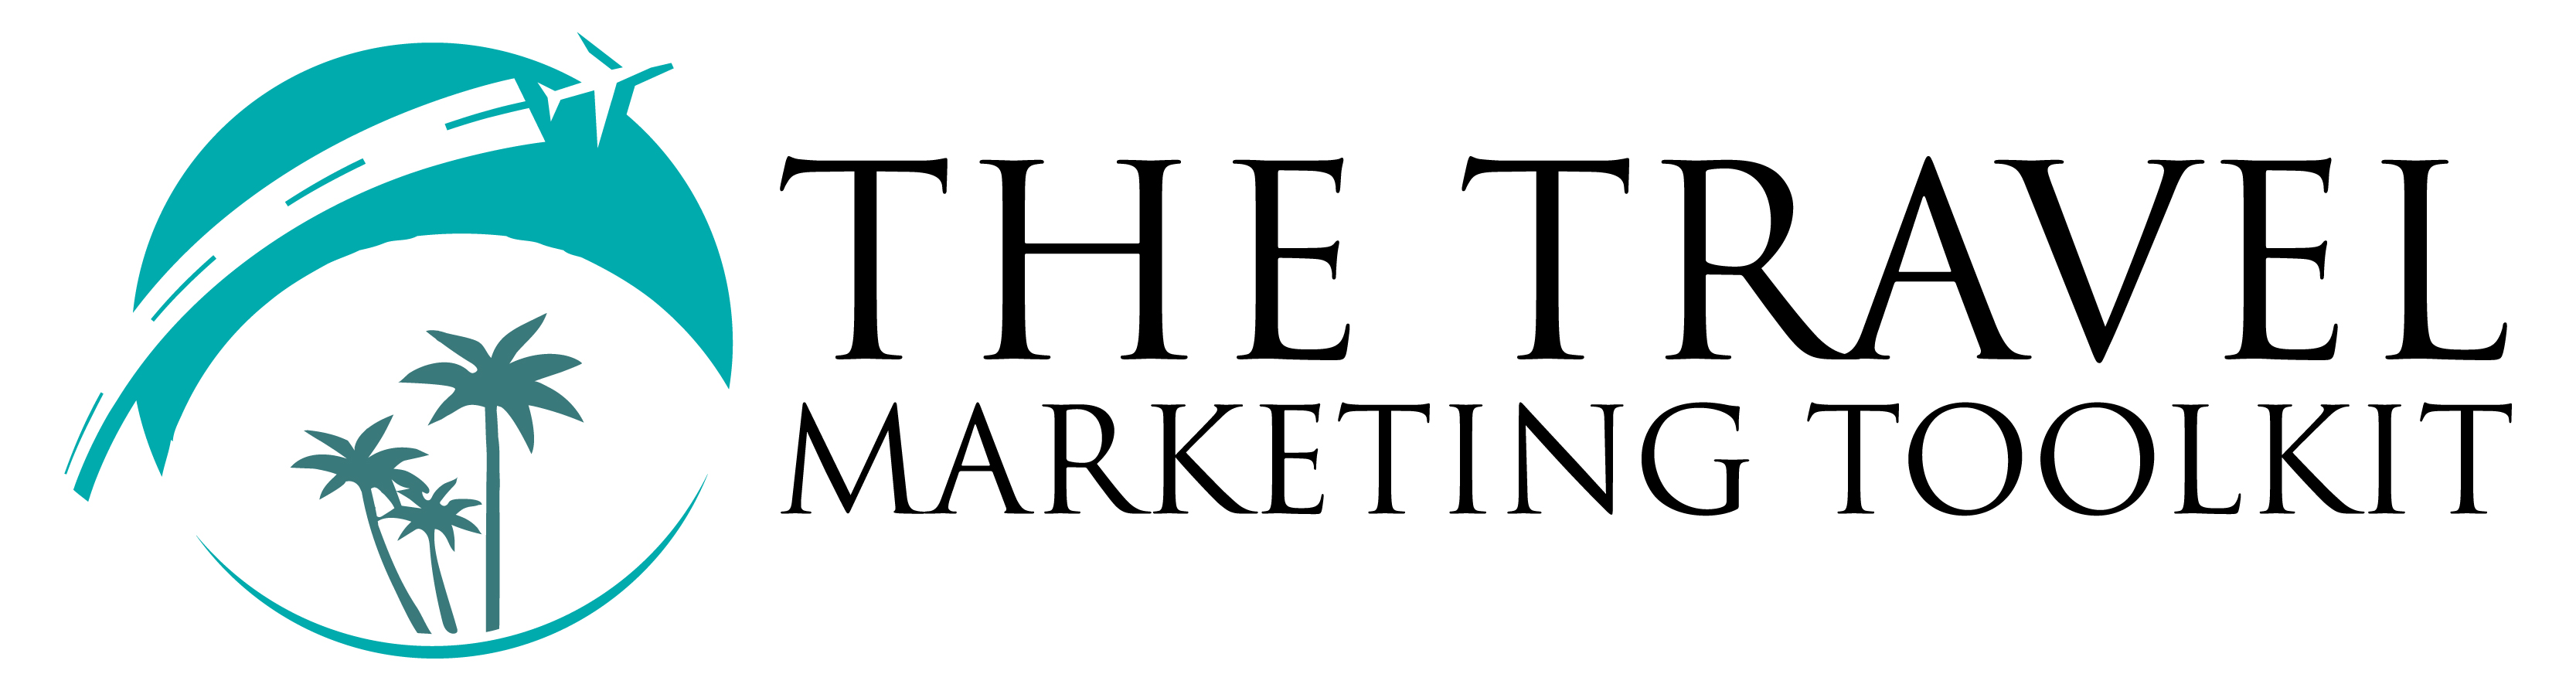 The Travel Marketing Toolkit